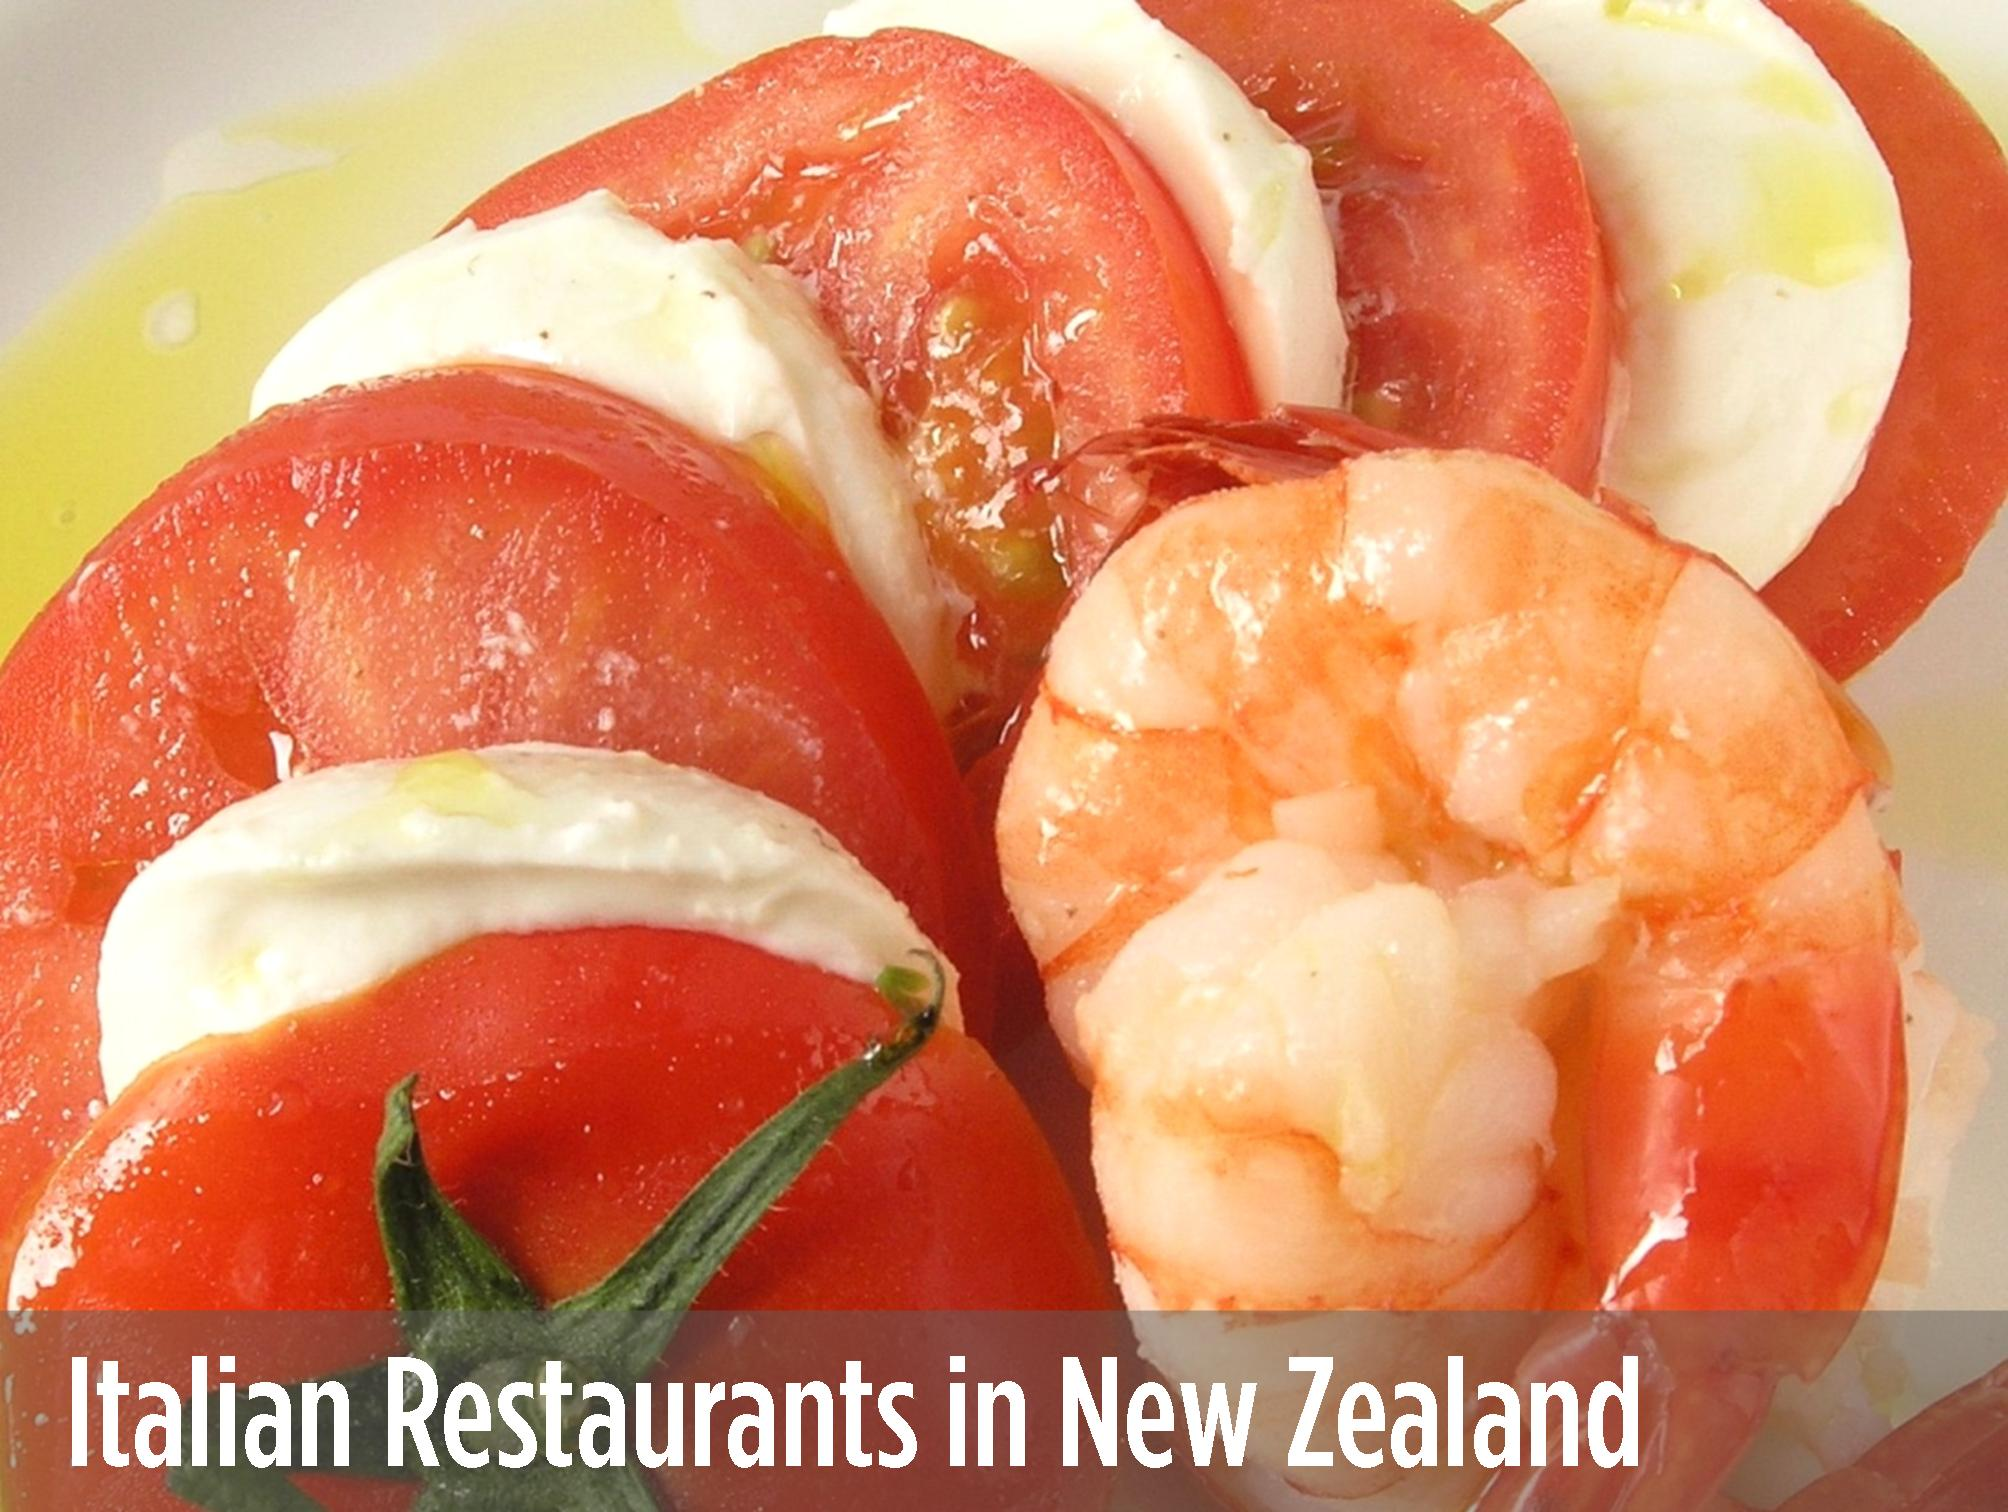 Italian Restaurants in New Zealand